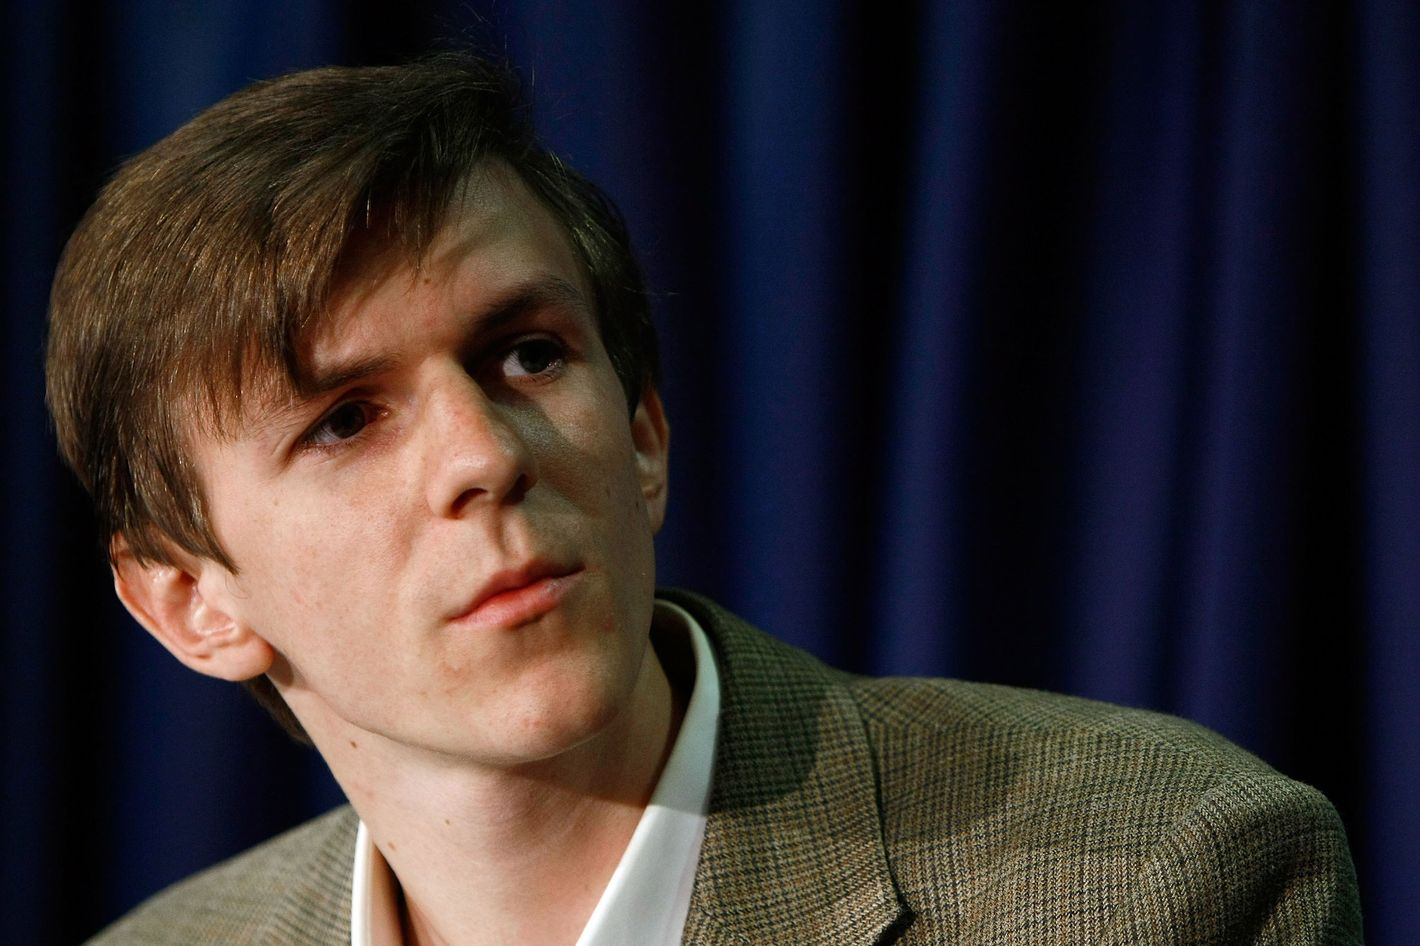 """James O'Keefe, the producer of """"ACORN Revealed: The Philadelphia Story"""" takes part in a press conference at the National Press Club October 21, 2009 in Washington, DC. During the  press conference Andrew Breitbart showed new video material as well as new footage of ACORN officials."""